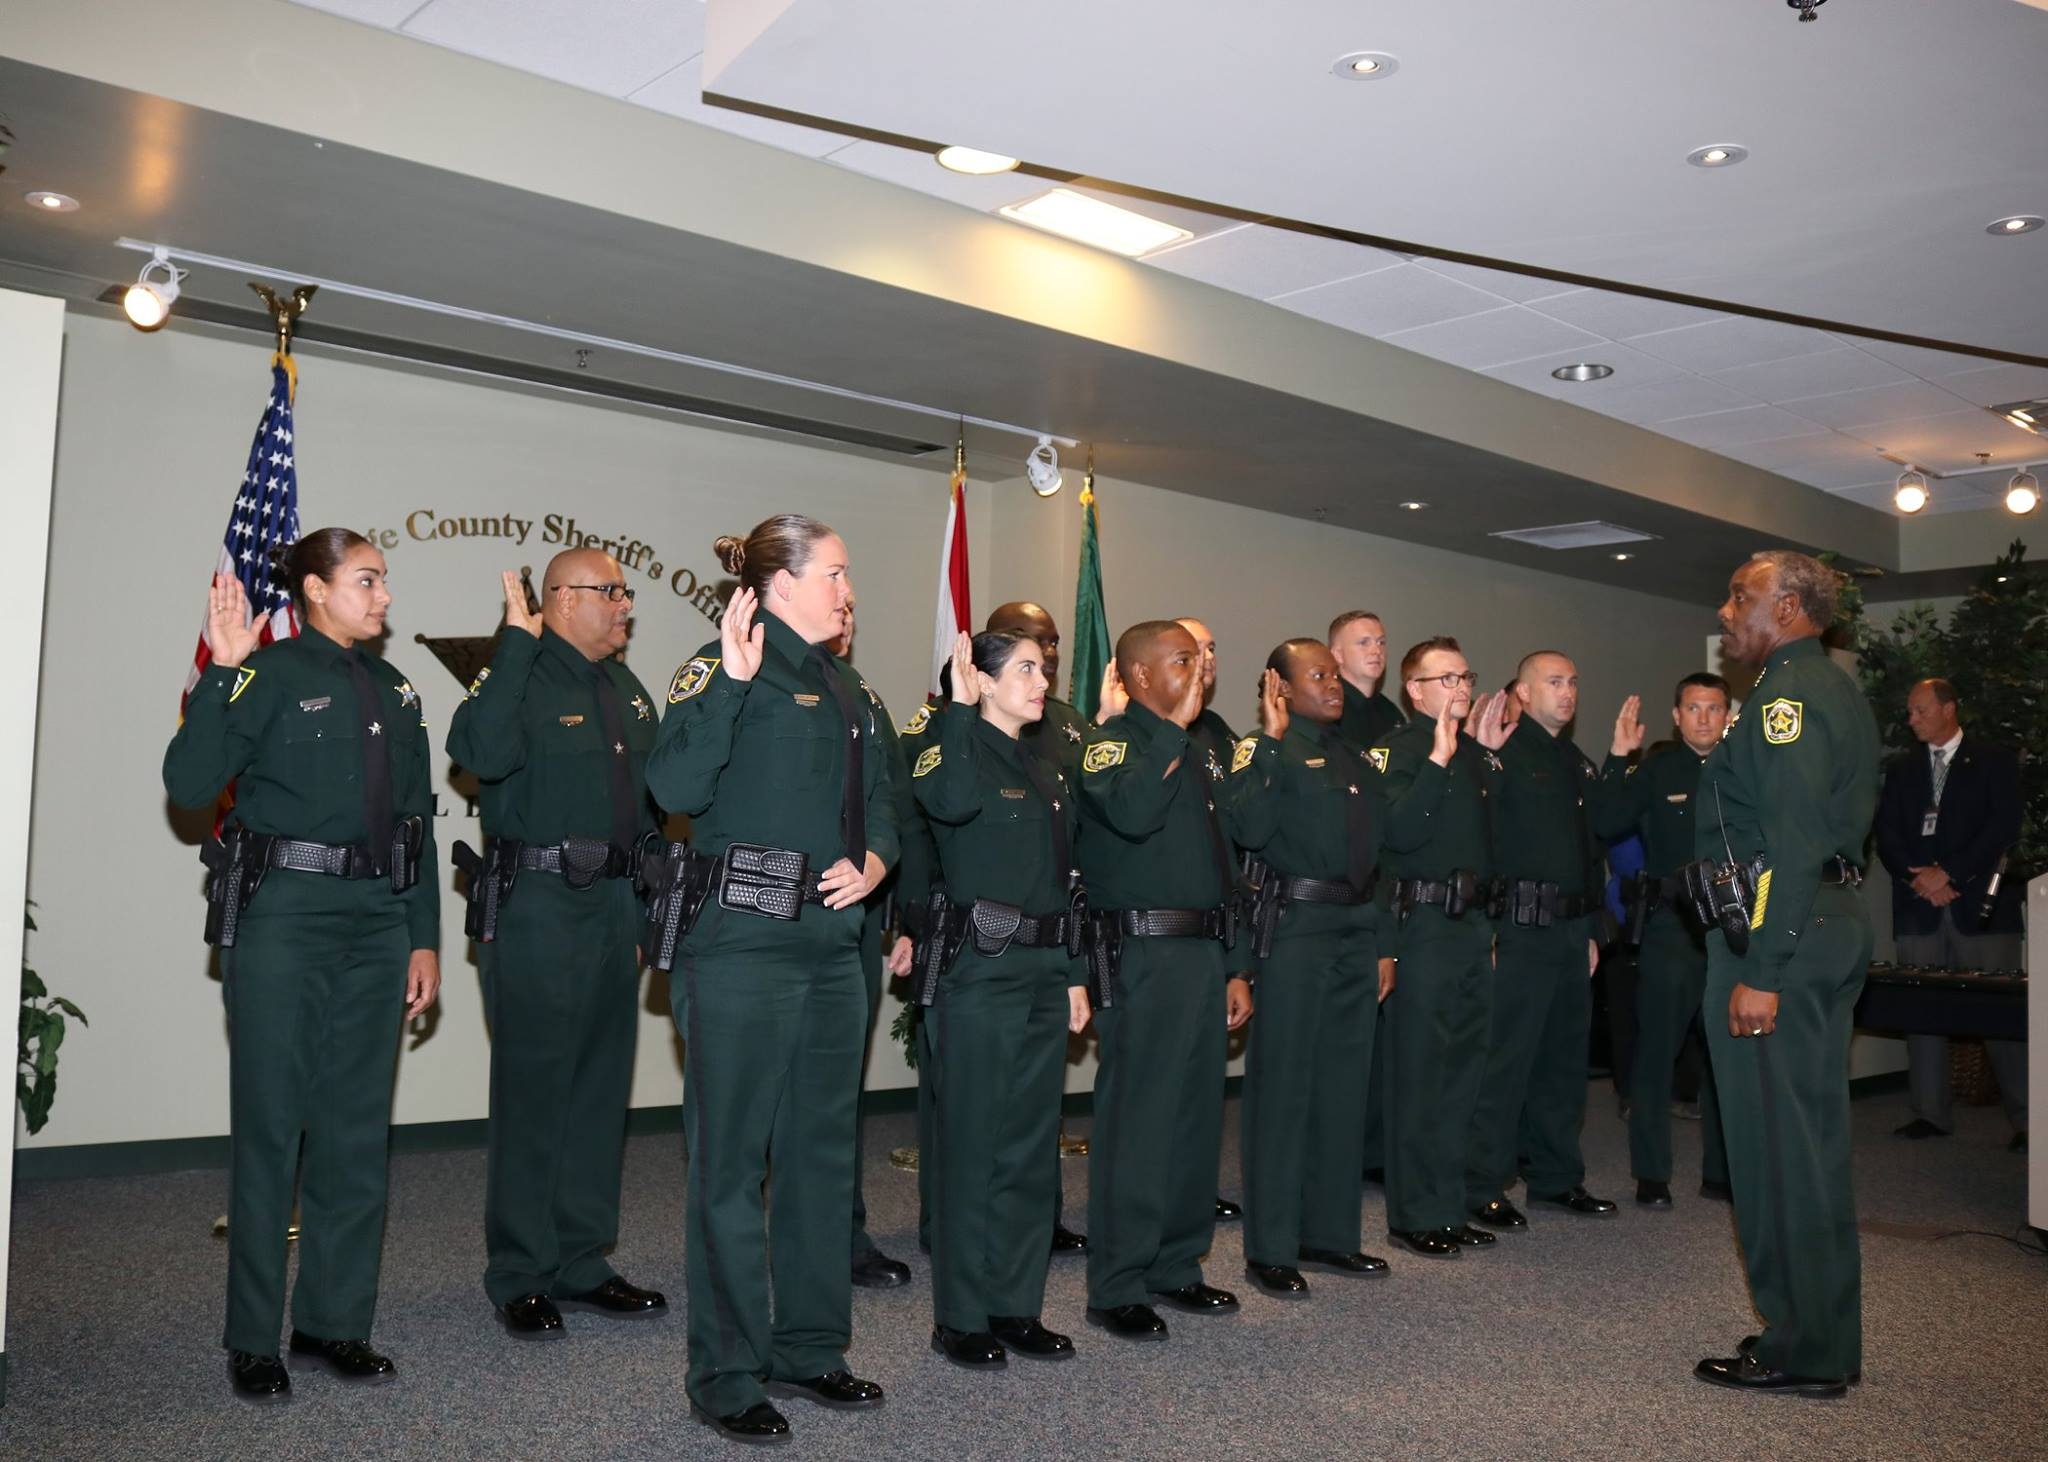 14 new certified deputies sworn-in in August 2018